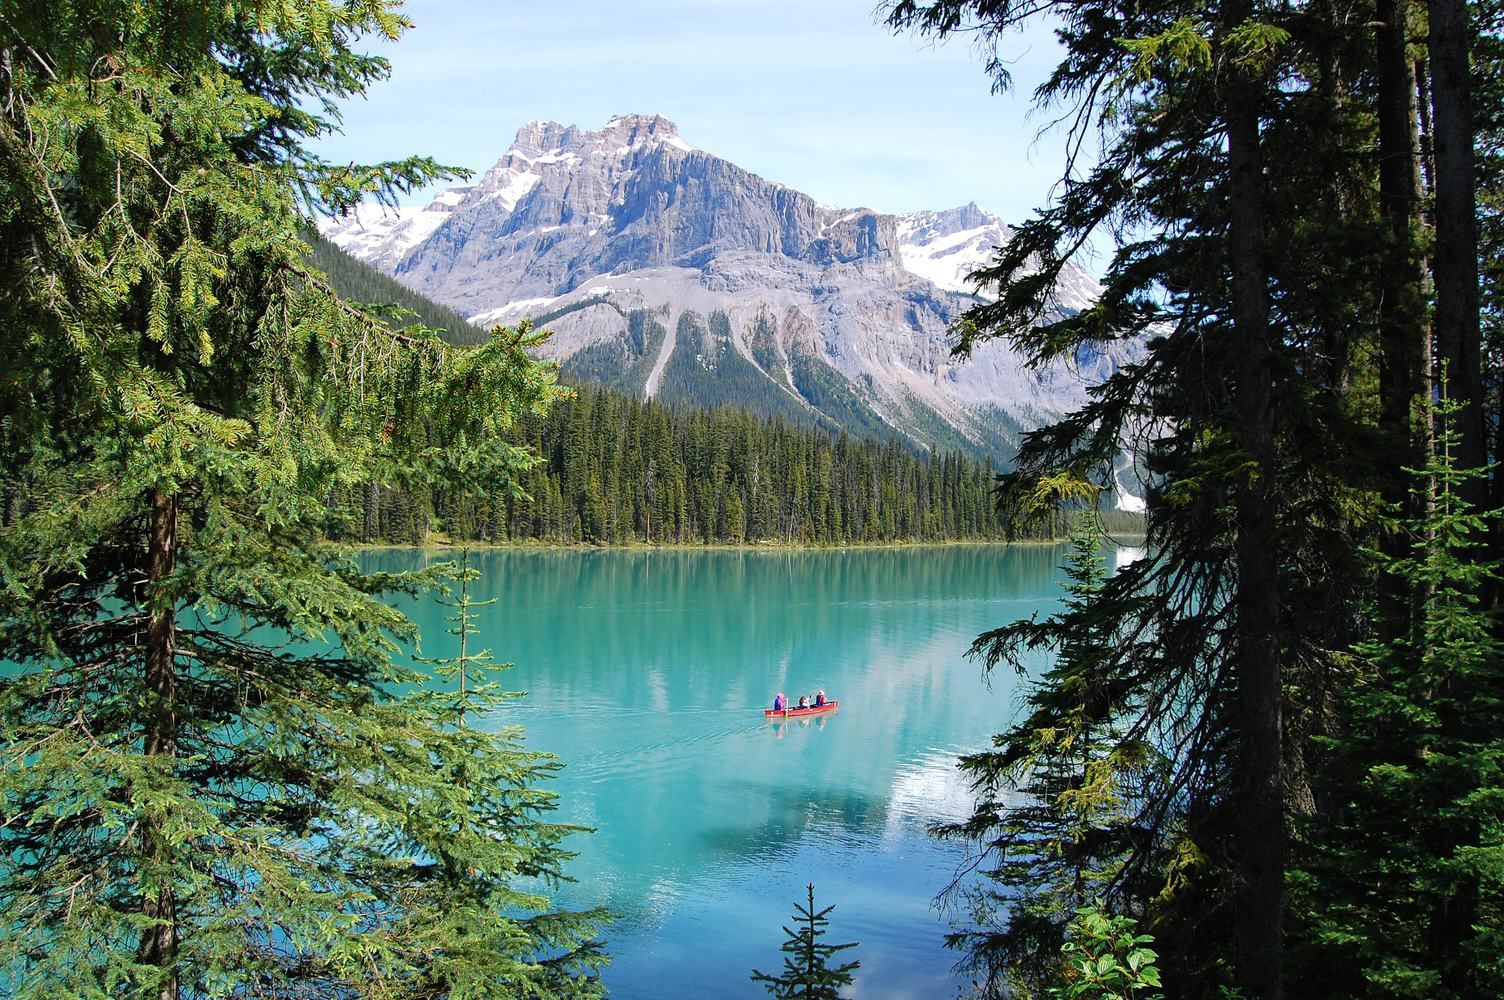 Canoe Trip on Emerald Lake, Yoho National Park, Canada